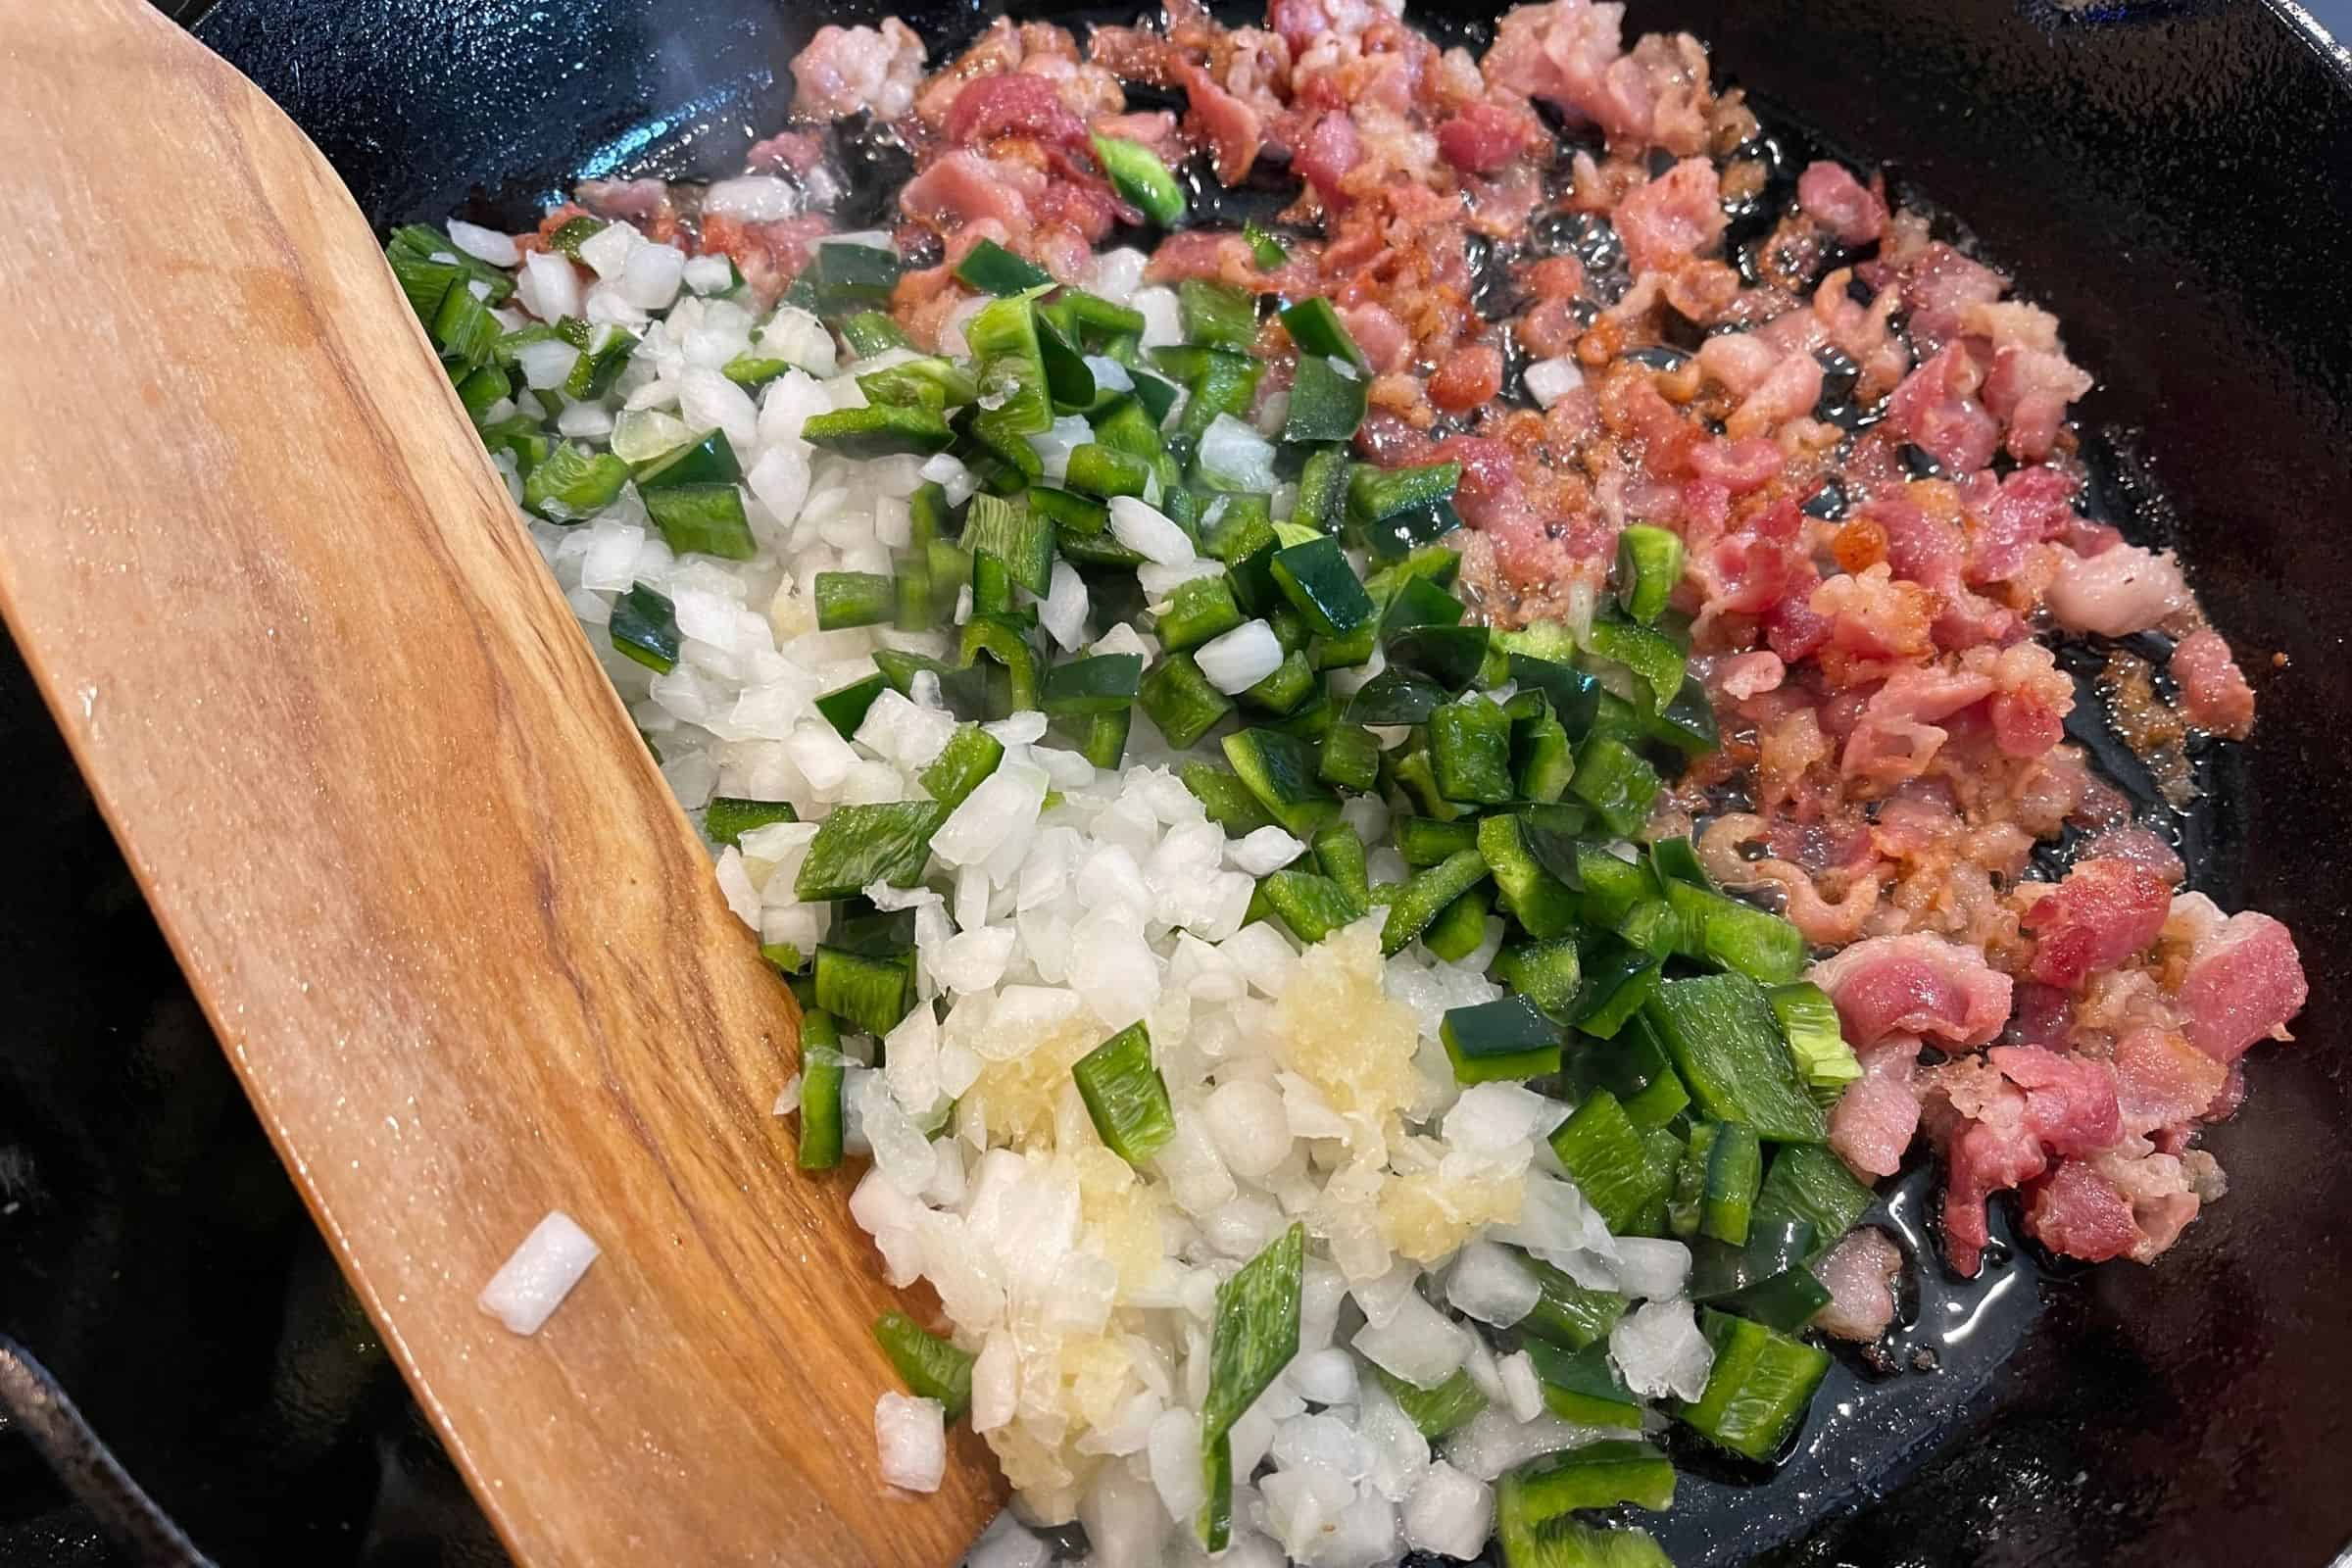 rendered bacon fat in a cast iron skillet with onion, poblano, and garlic